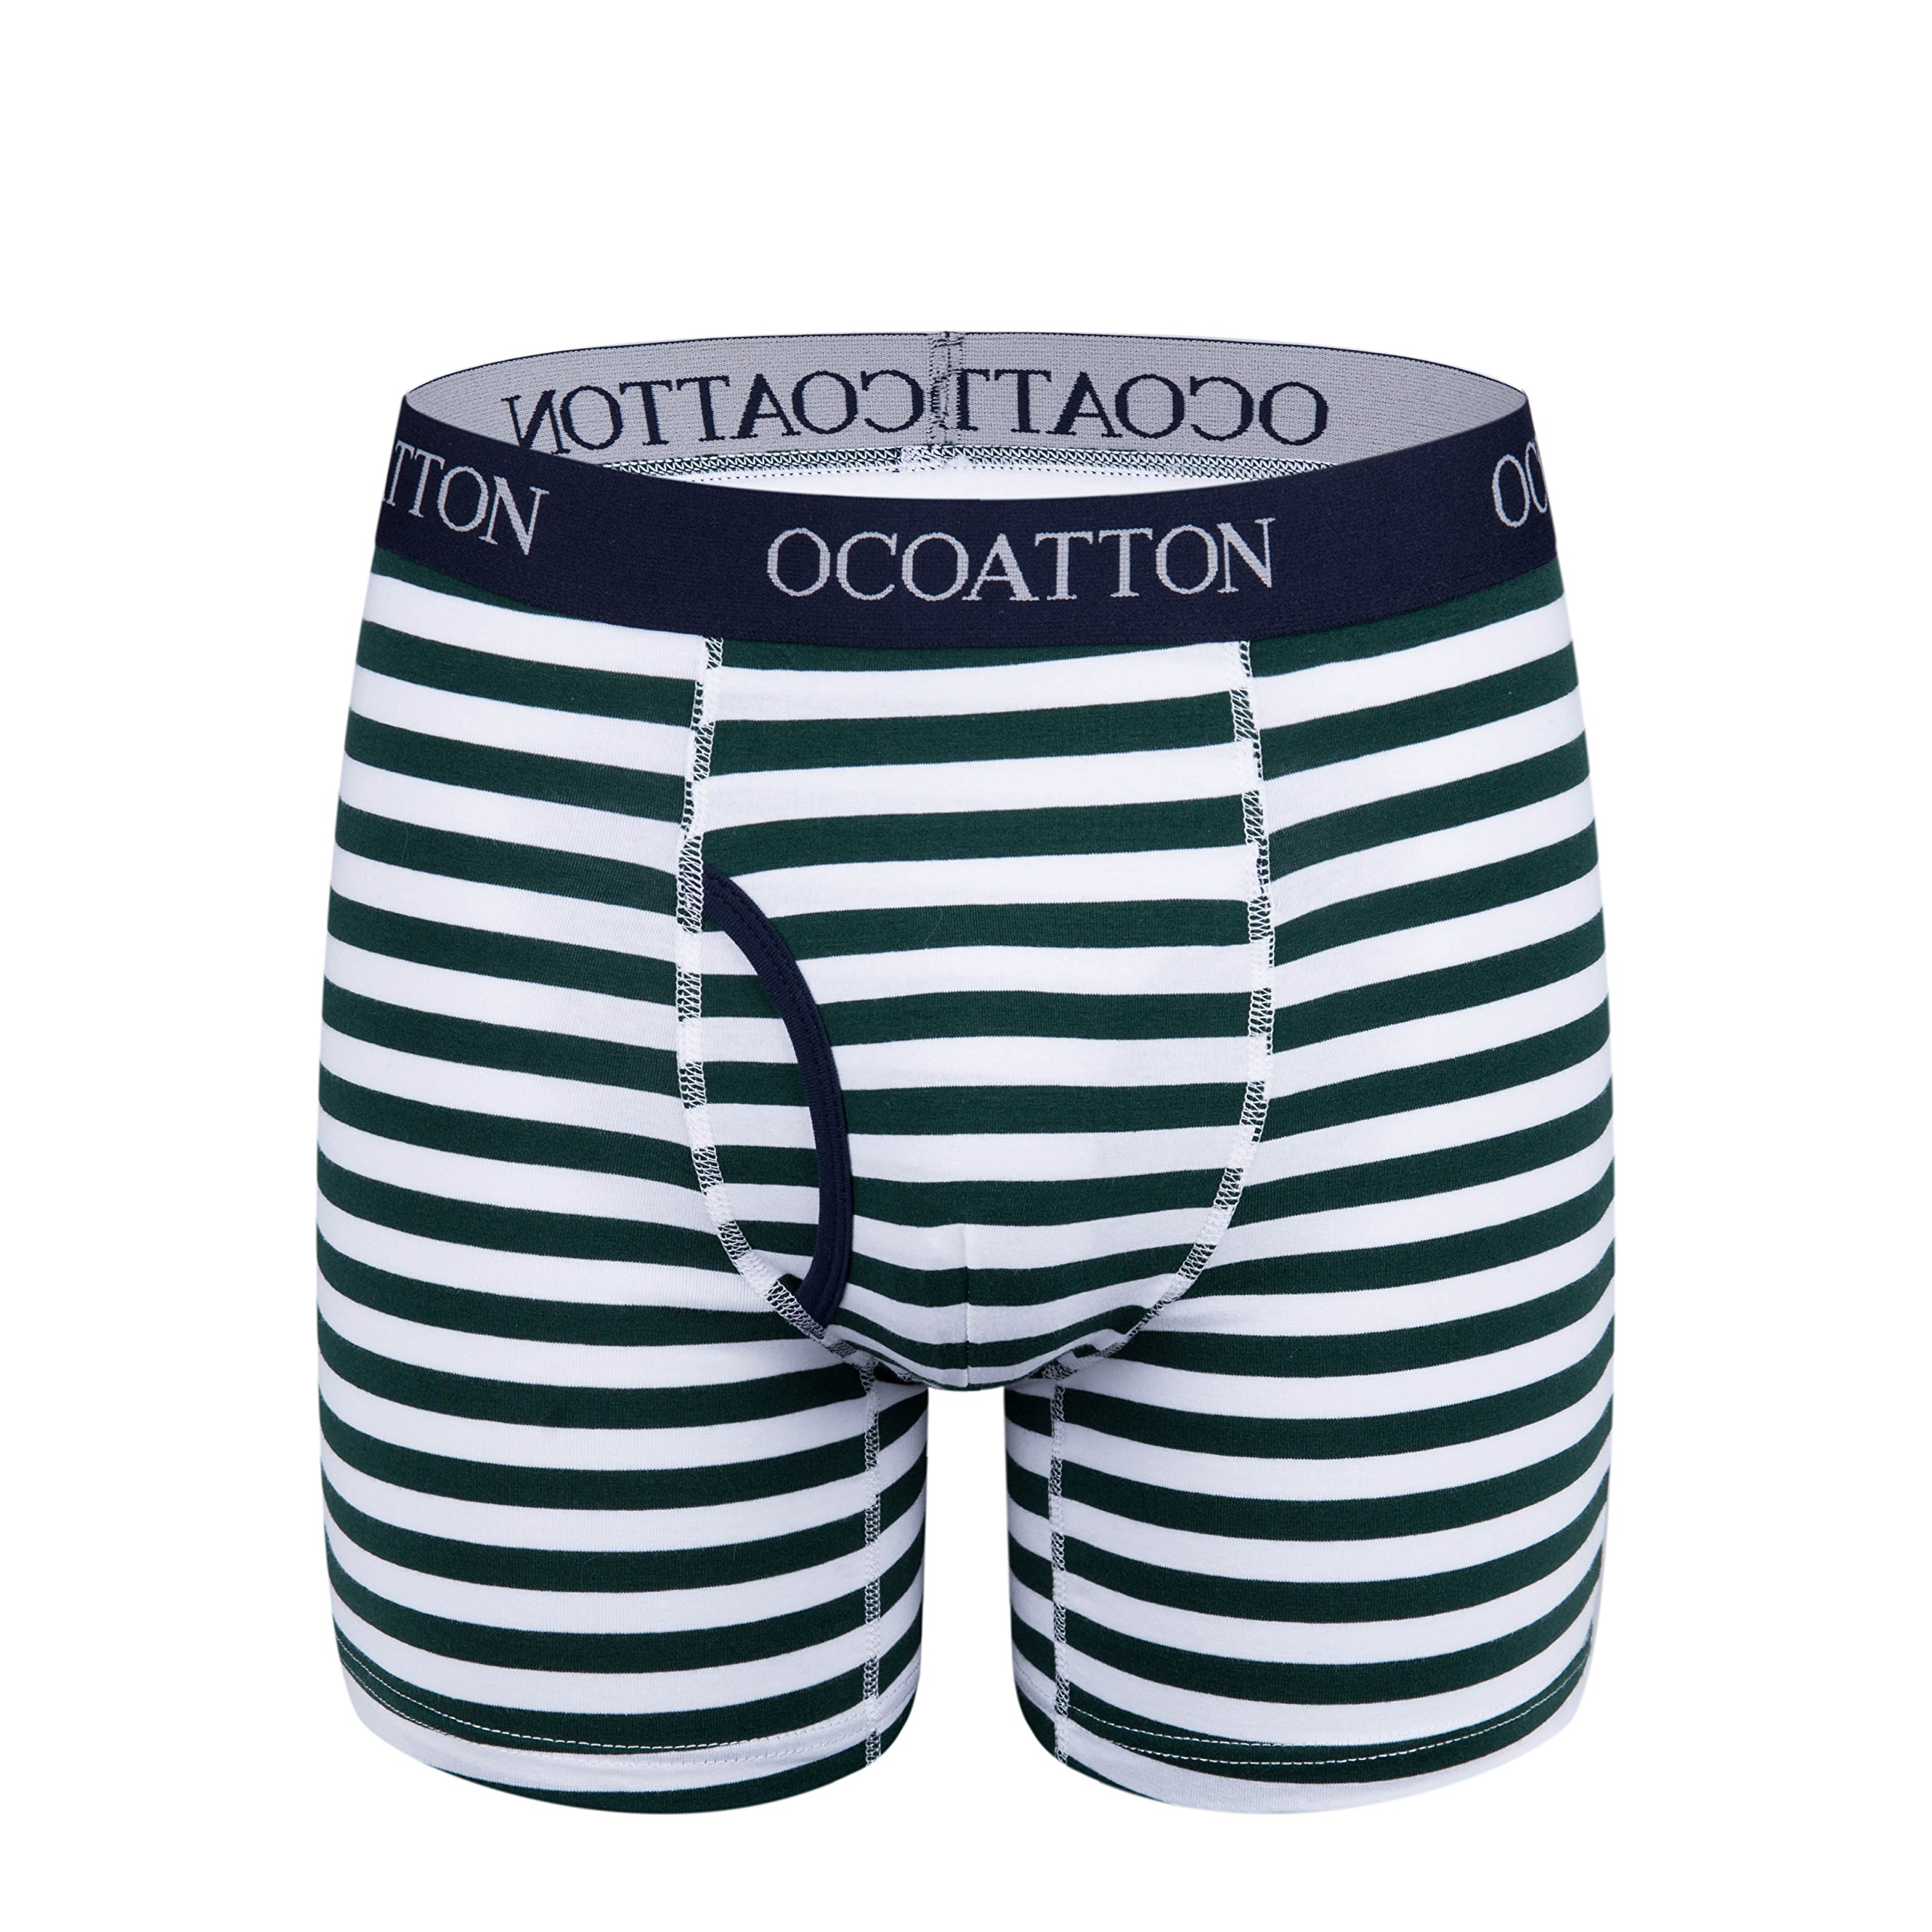 OCOATTON Men's Boxer Briefs Cotton Striped Underwear with Front Fly 6-Pack (XXXL, 2black/2green/2red) by OCOATTON (Image #3)